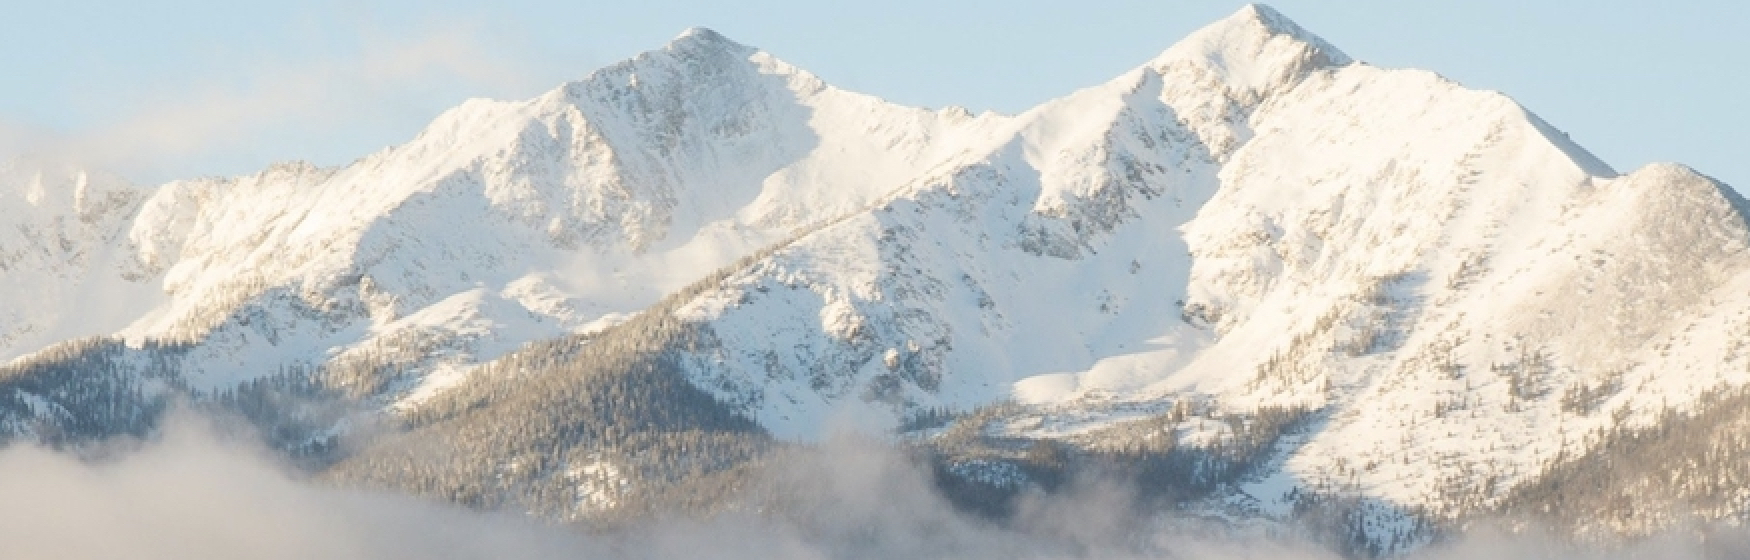 Tenmile Range in Summit County - Summit County Long Term Rental Information